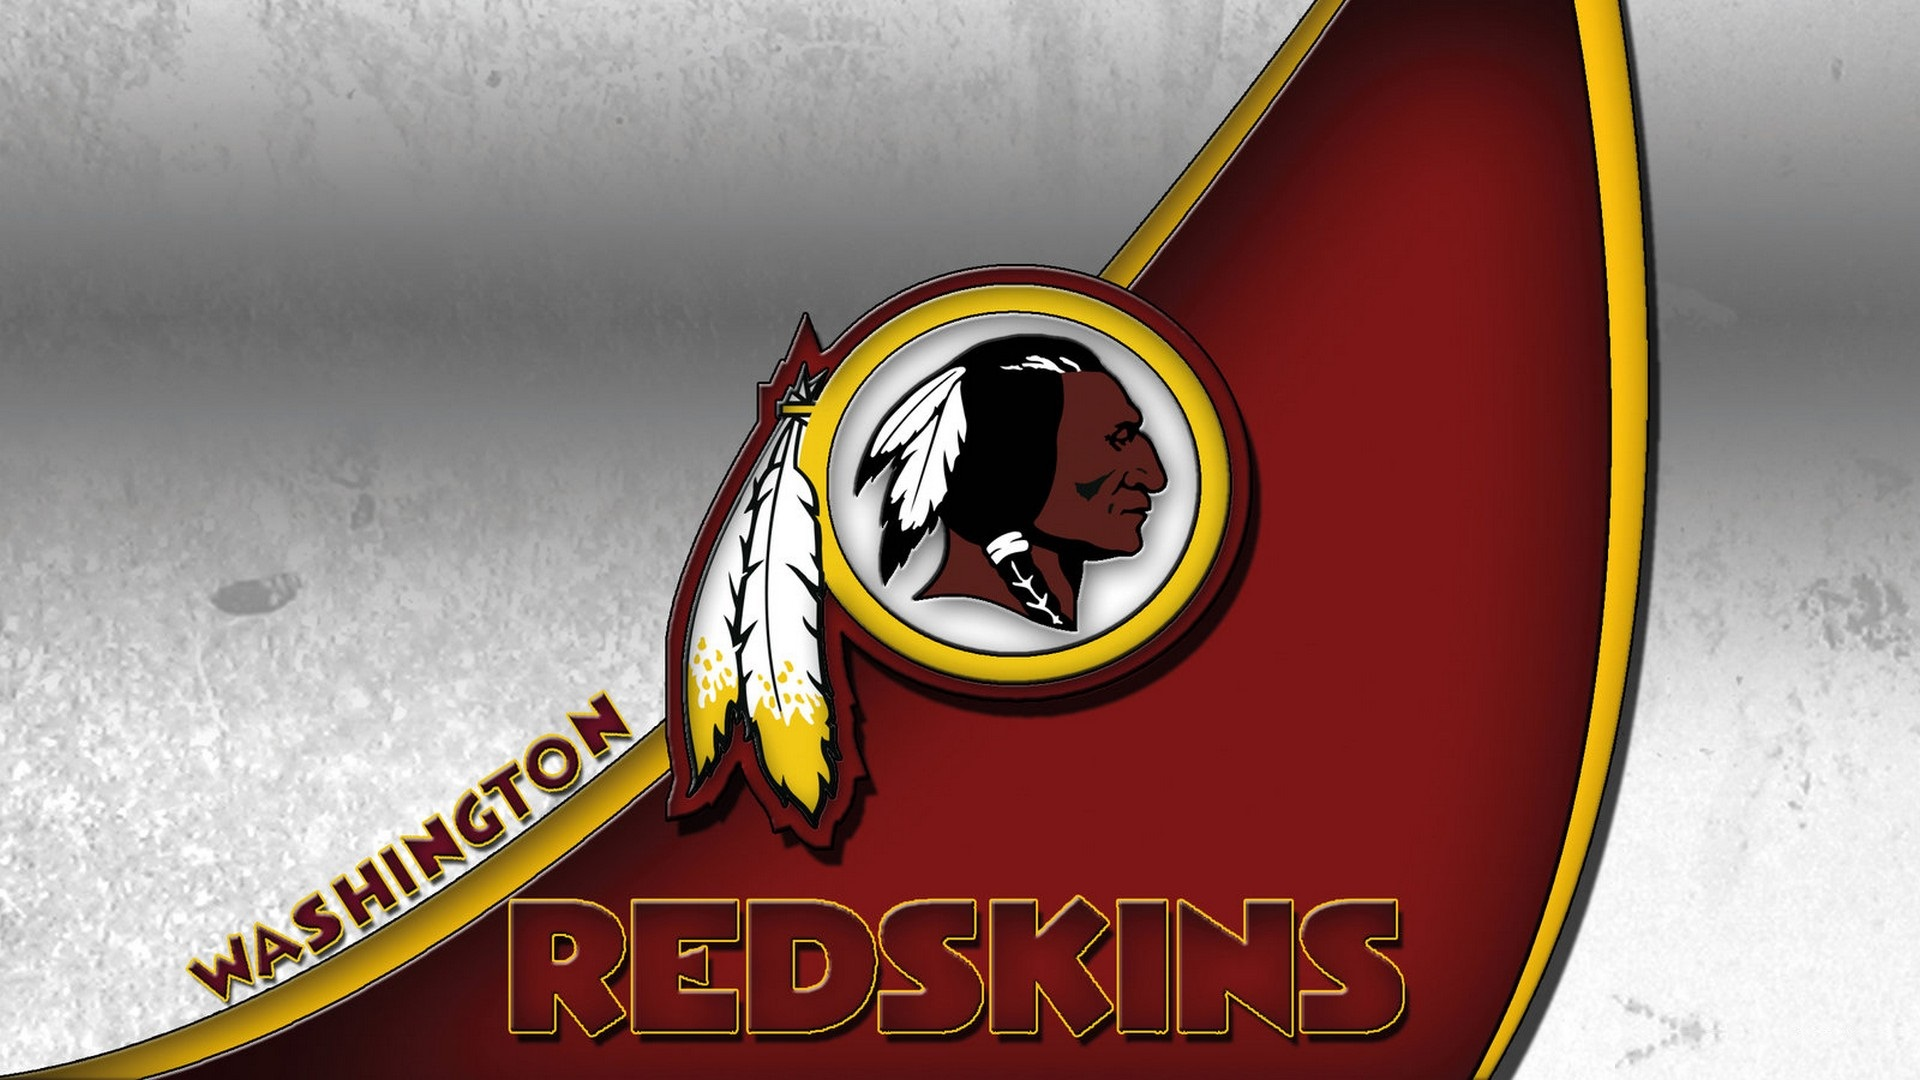 Washington Redskins Backgrounds HD 2020 NFL Football Wallpapers 1920x1080